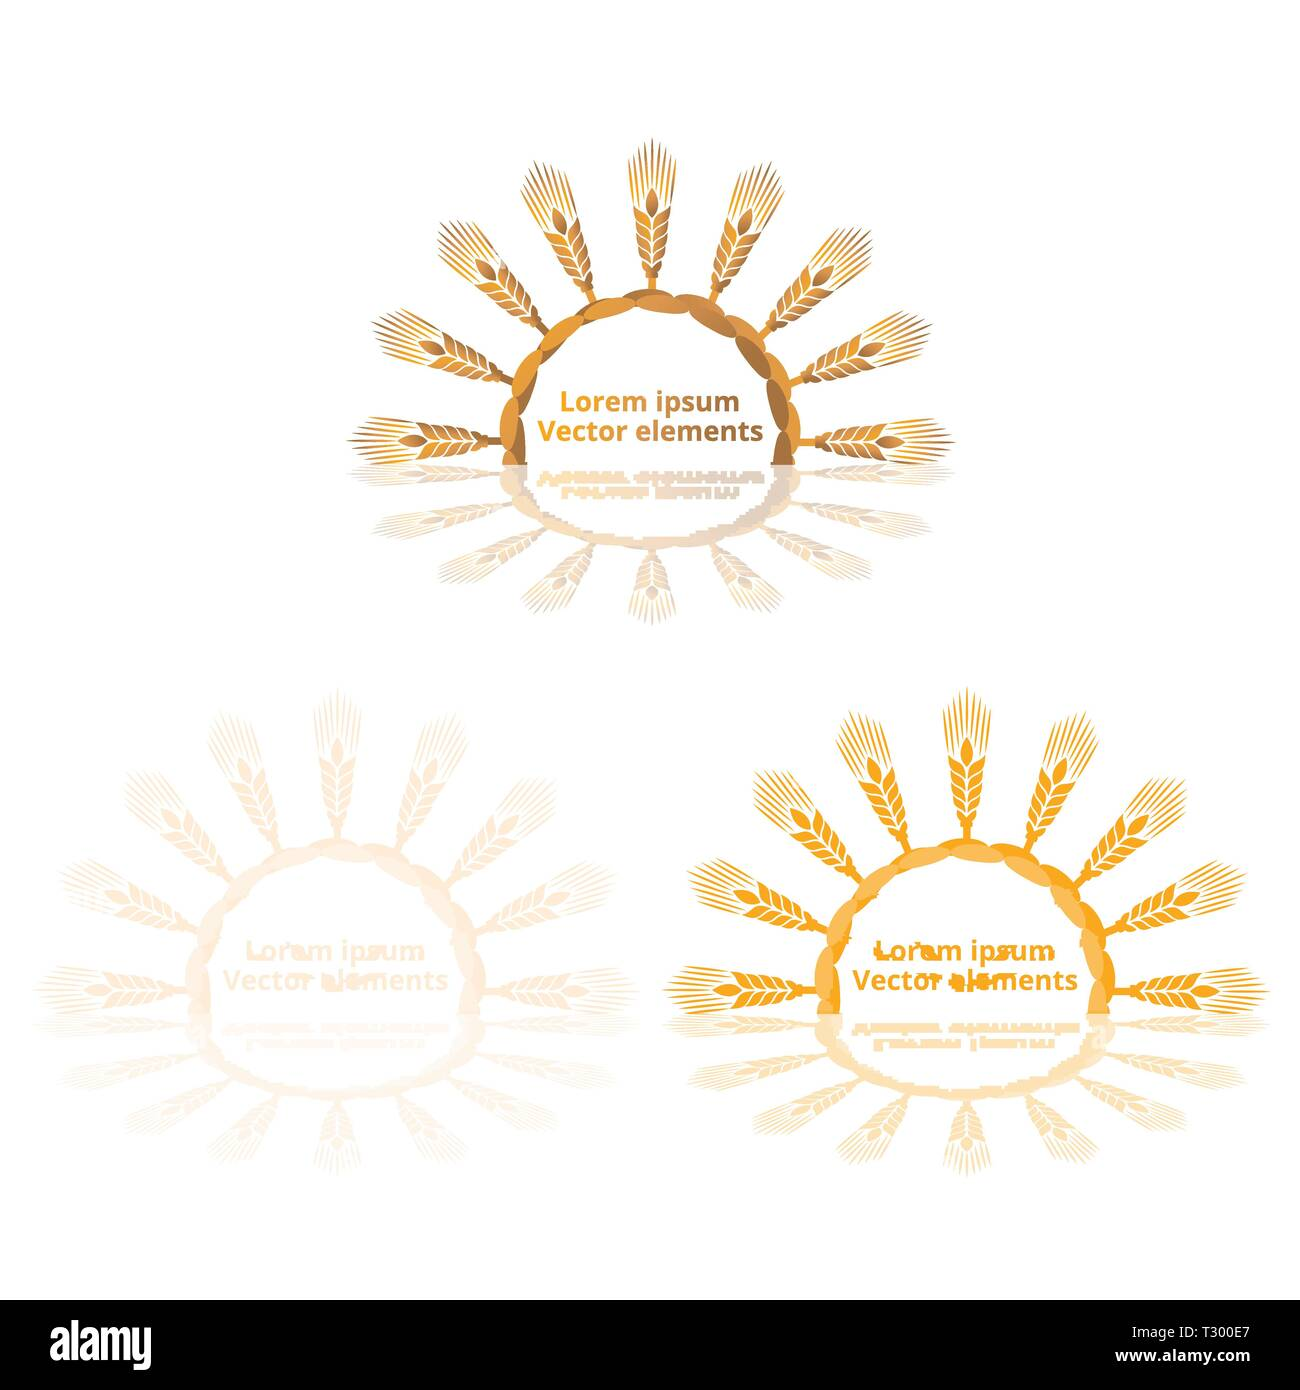 Wheat ears, oats or barley three vector    logotypes set golden on white background. Eco natural ingredient element, healthy food or agriculture, brea - Stock Image